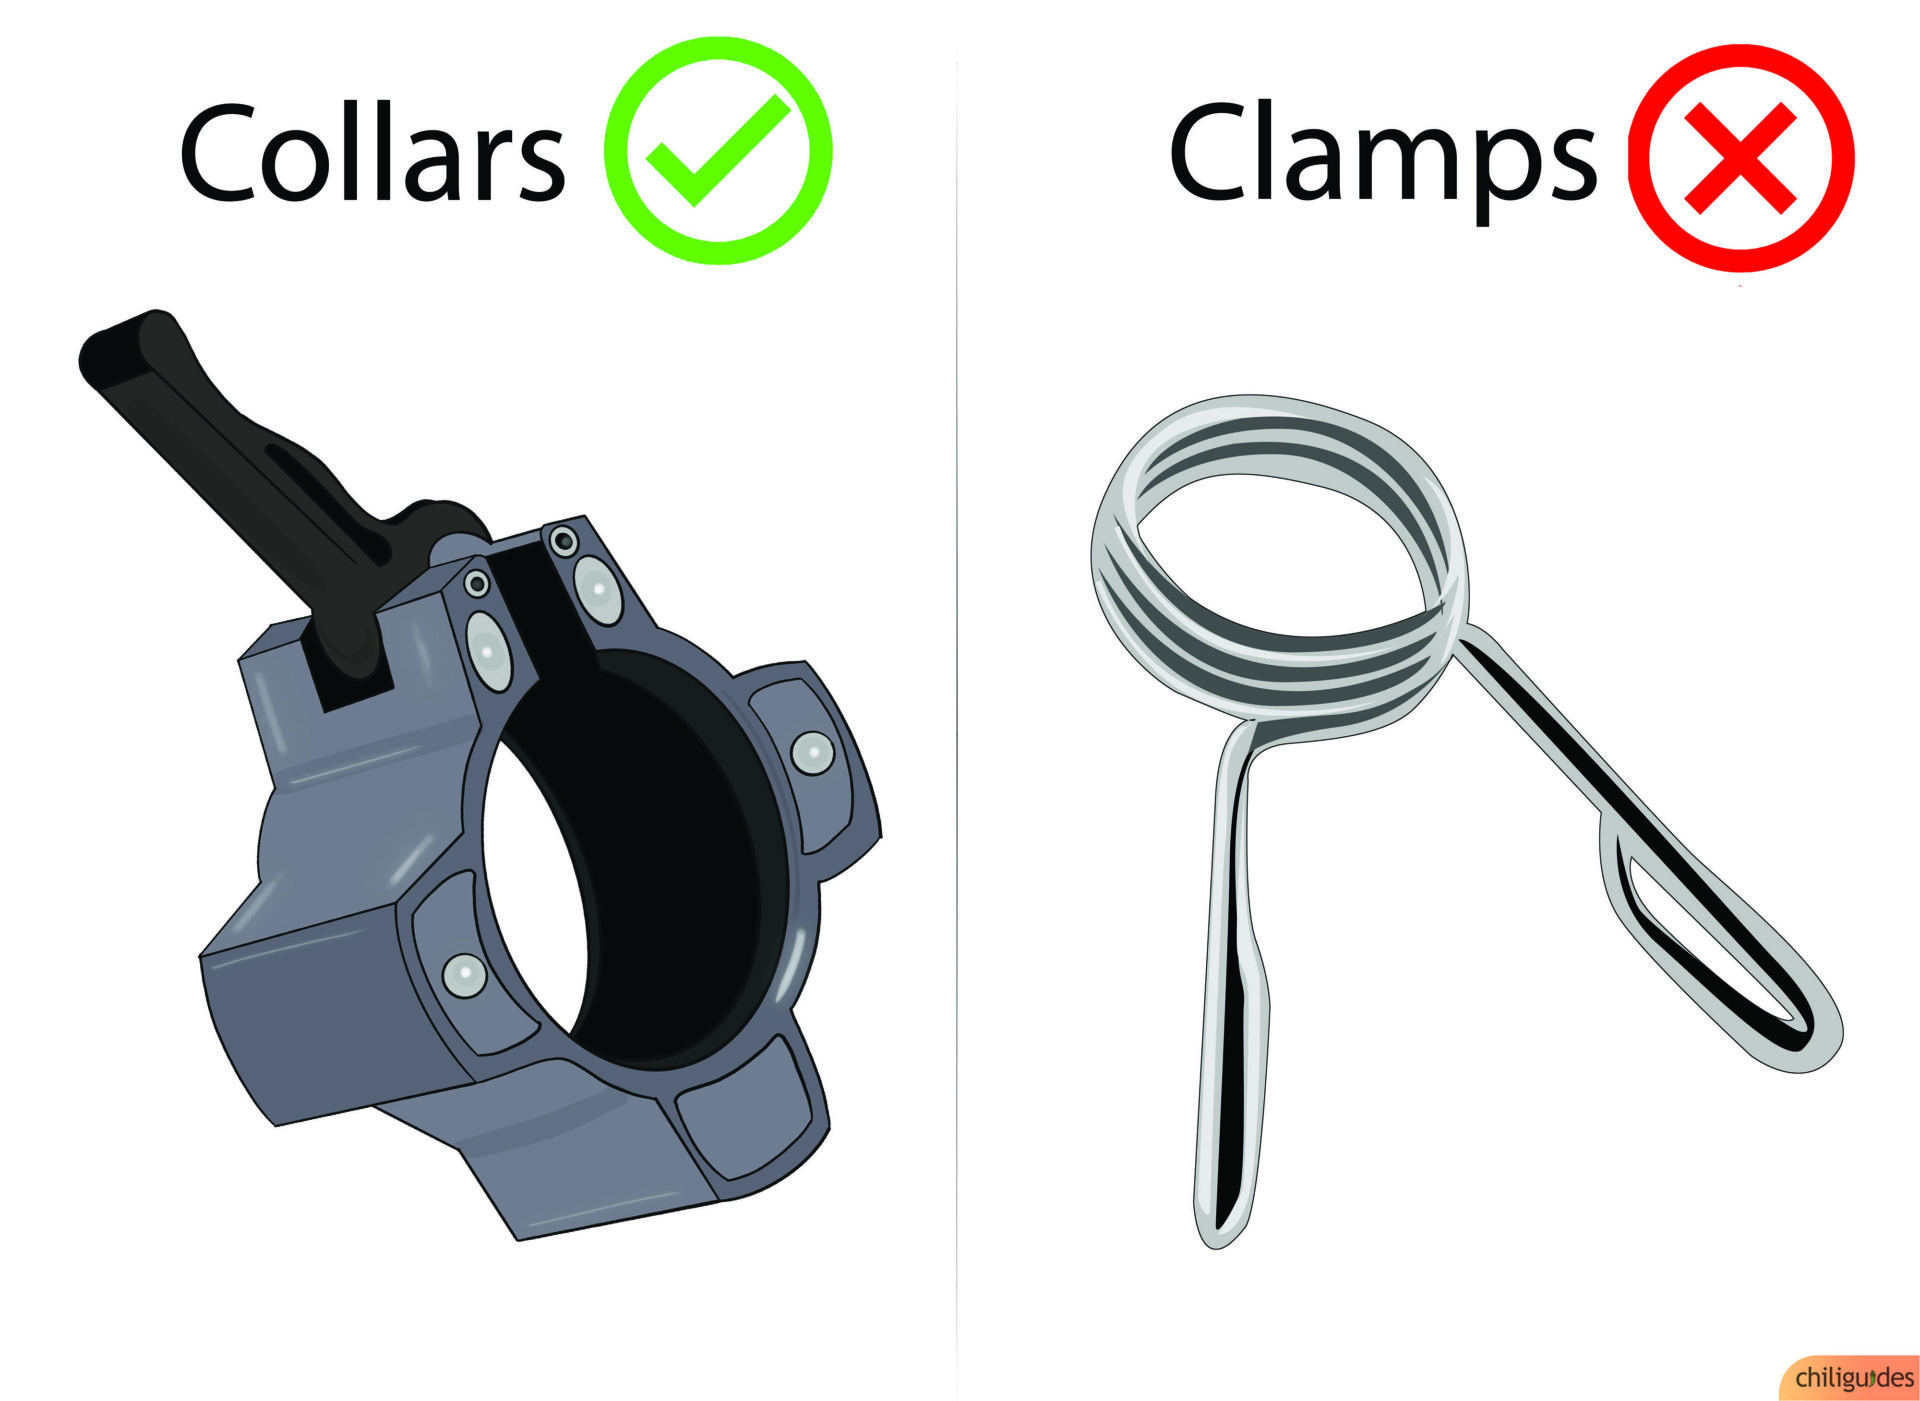 Don't go for clamps. Choose collars.